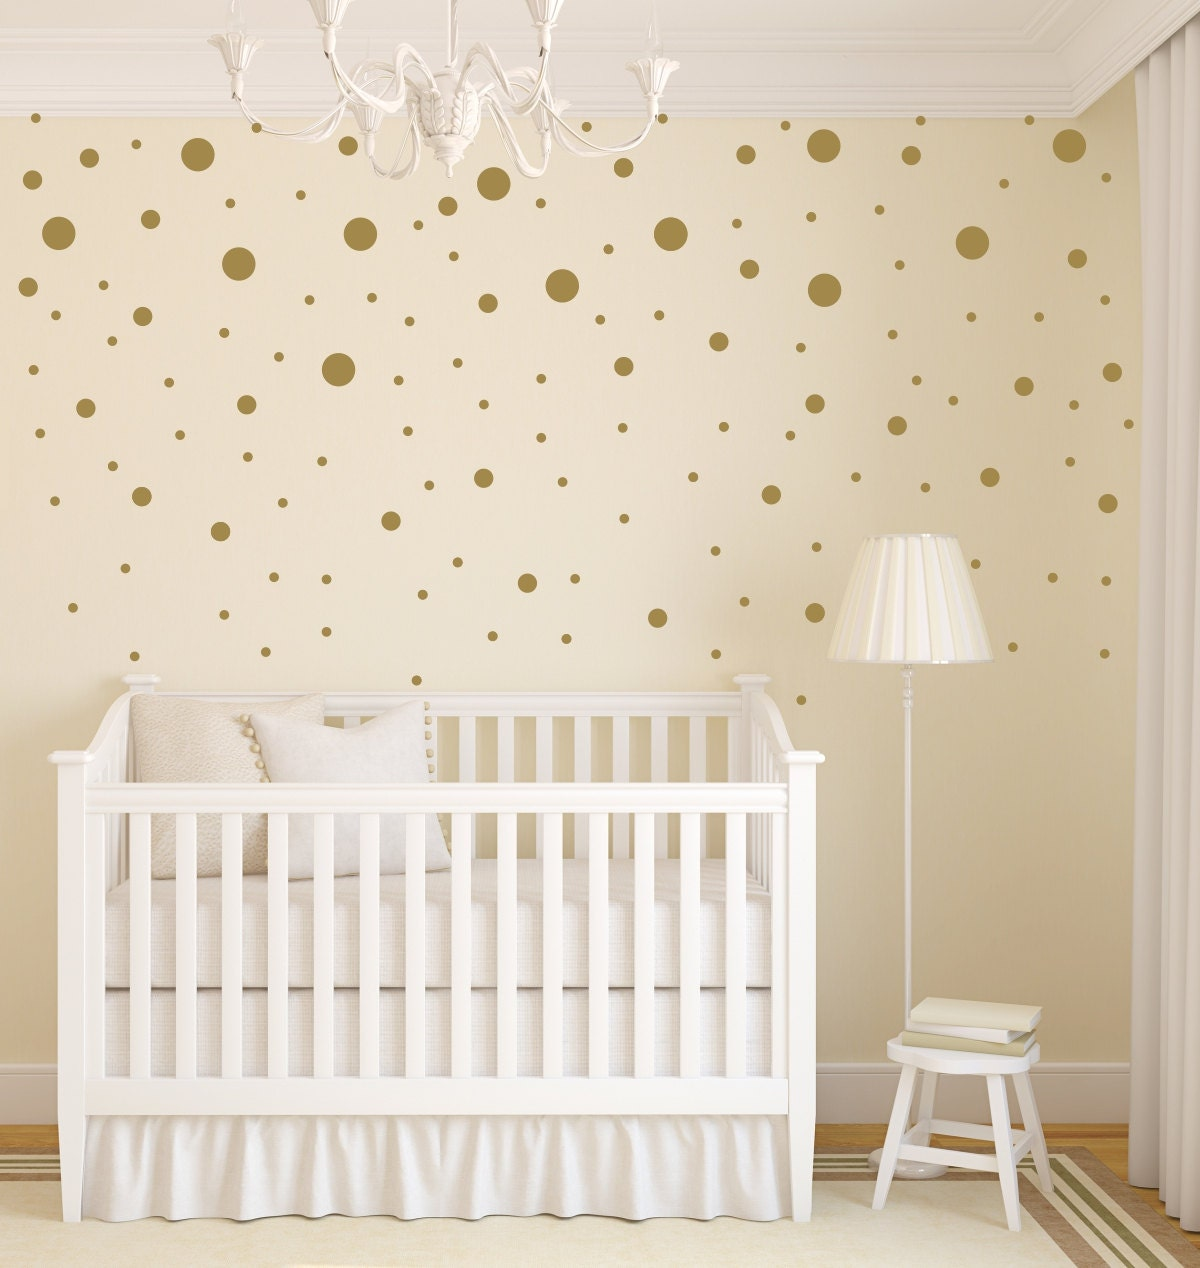 Stars Stickers For Walls Gold Dot Decals Polka Dot Wall Decal Gold By Lulugirldesigns